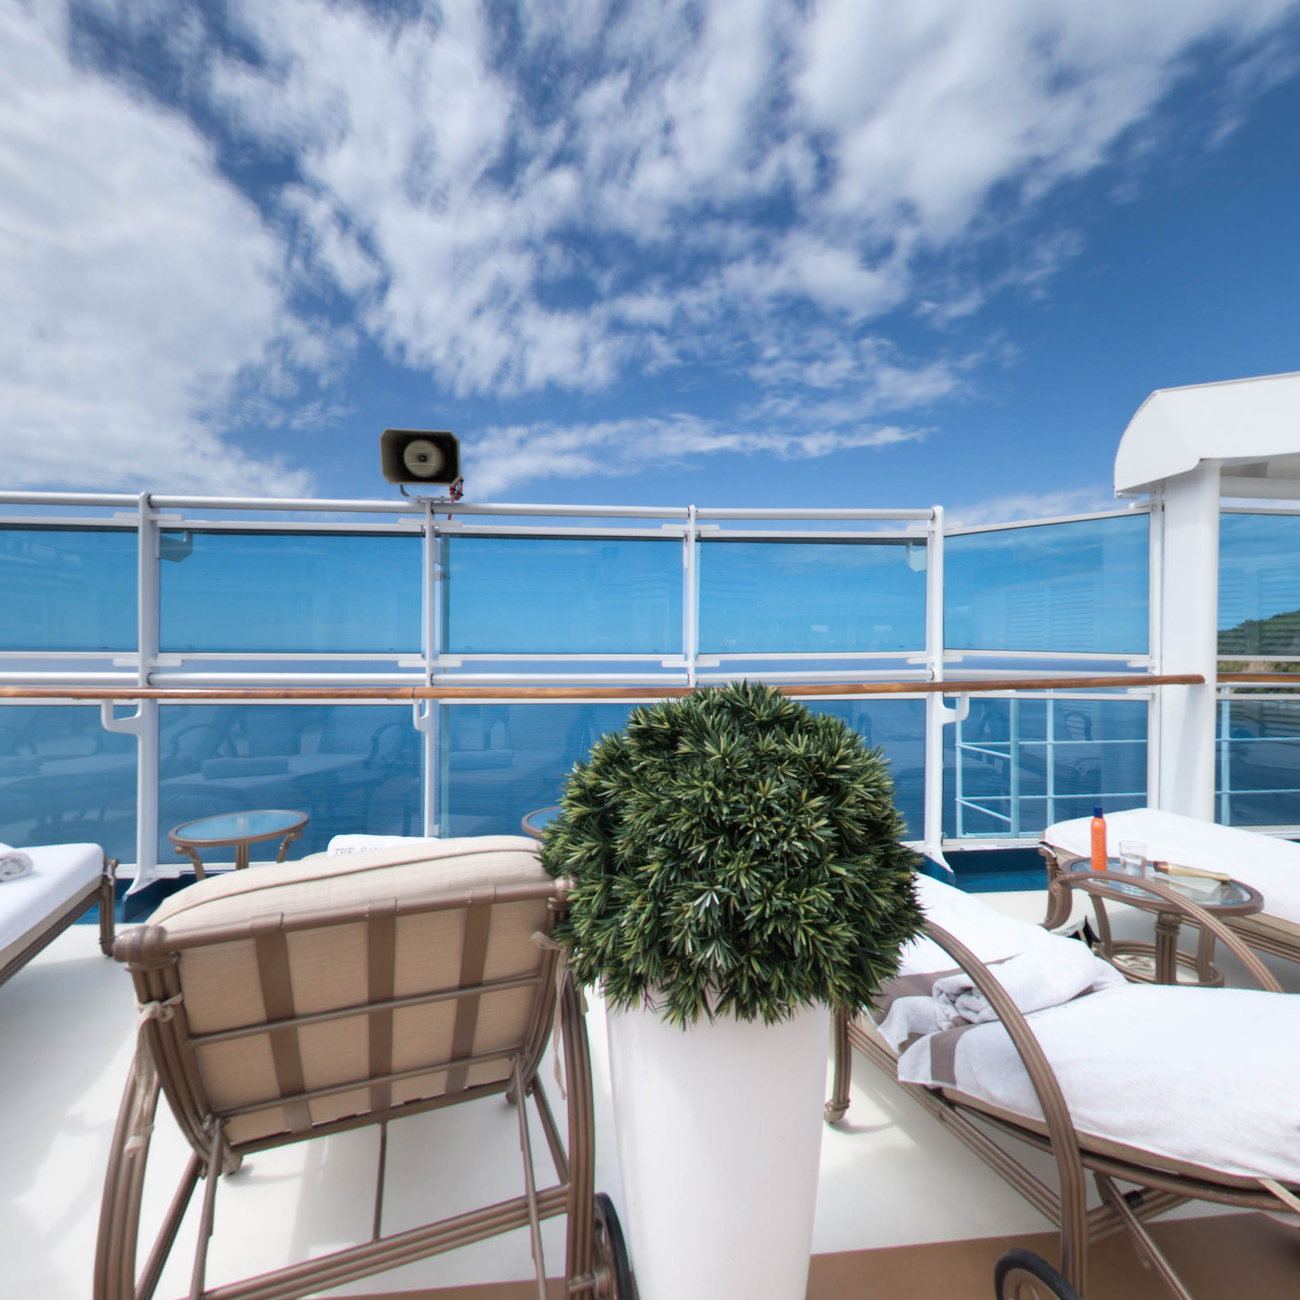 Panorama of The Sanctuary on Royal Princess